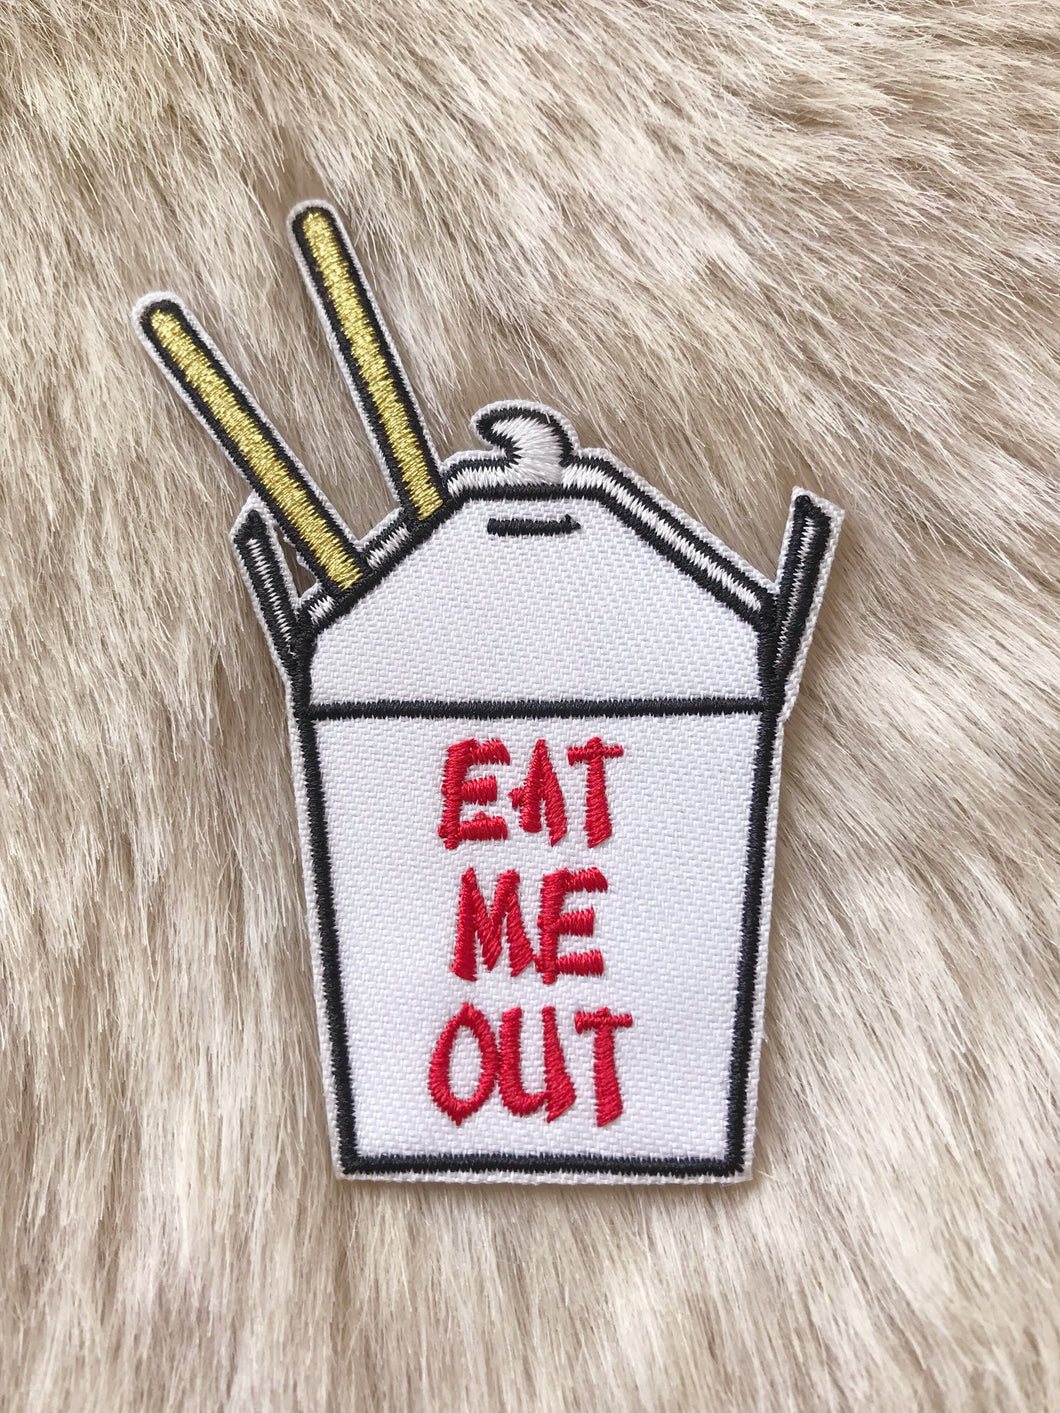 Eat Me Out Patch